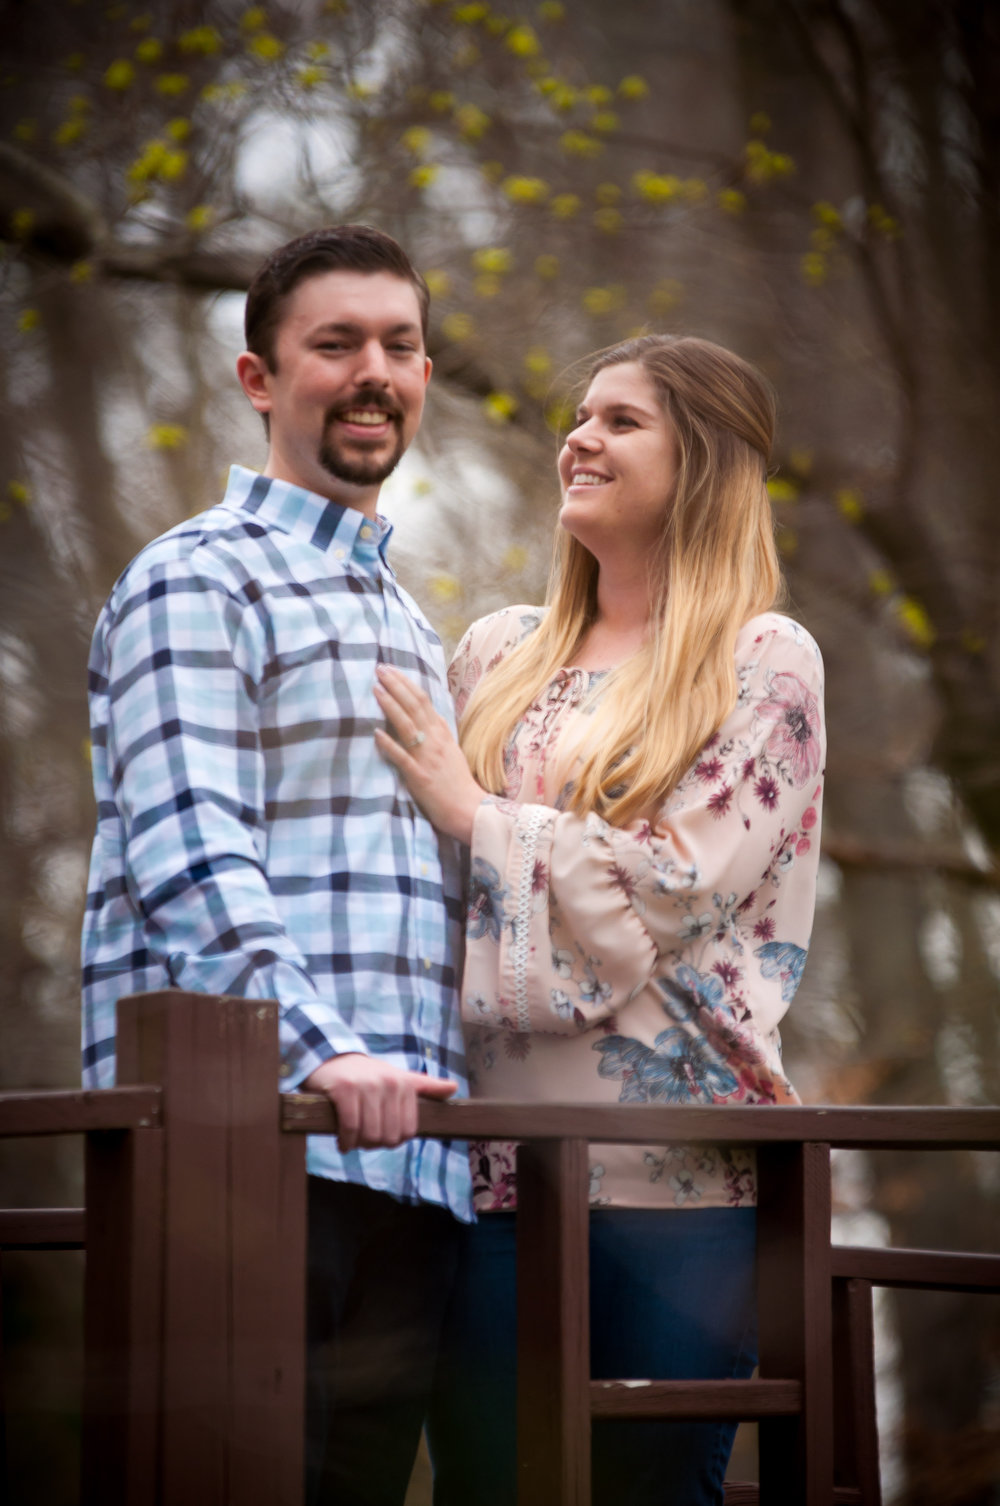 CarrieWestonStudios_Engagement_Wedding_Portraits_NY_Photography_Photographer-2-4.jpg